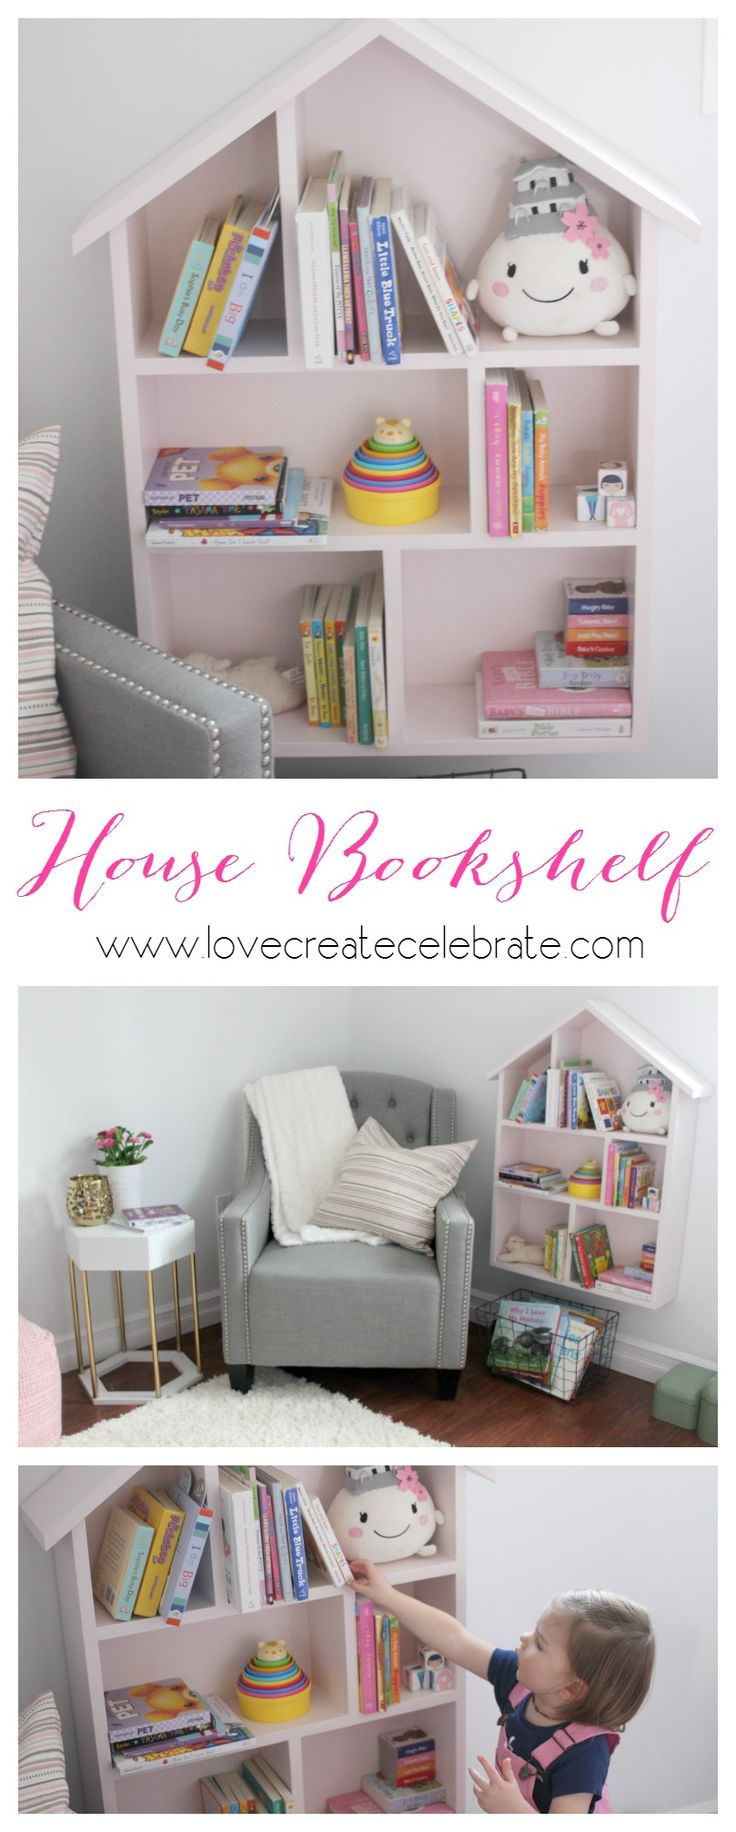 diy house bookshelf for a childs bedroom or playroom cute decor piece includes tutorial - Childs Bedroom Ideas